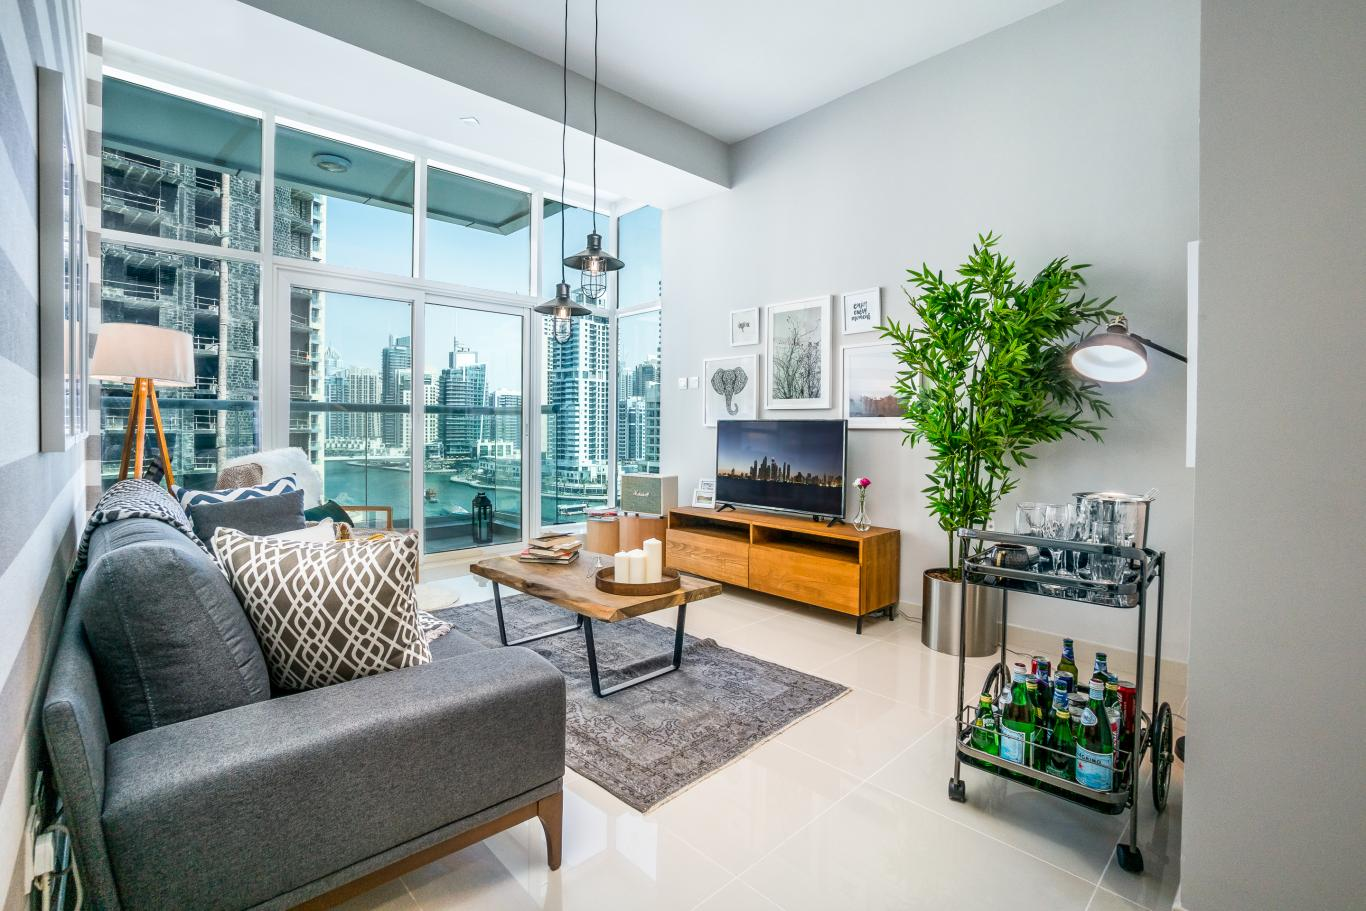 Marina Continental Apartment III - Apartment for Rent in ...